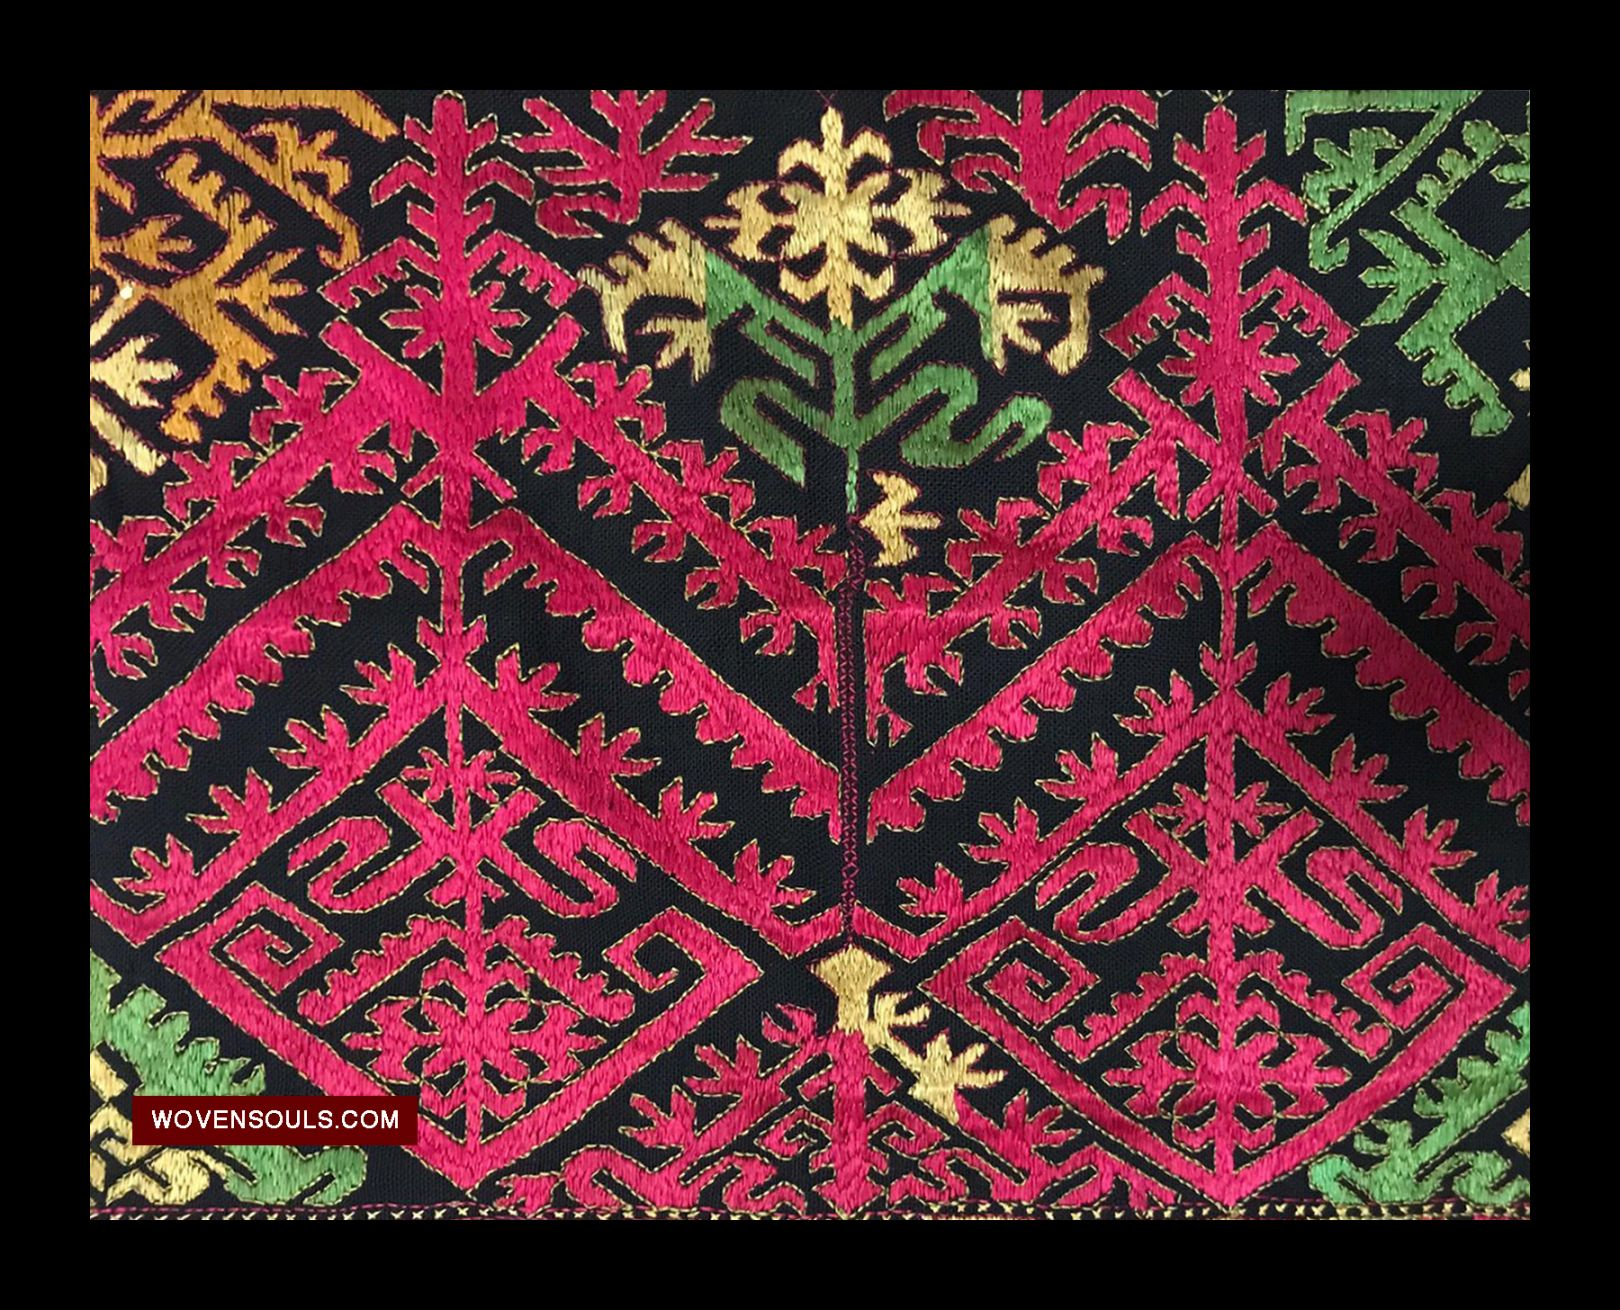 1351 Antique Kohistan Textile Embroidery Panel Mas